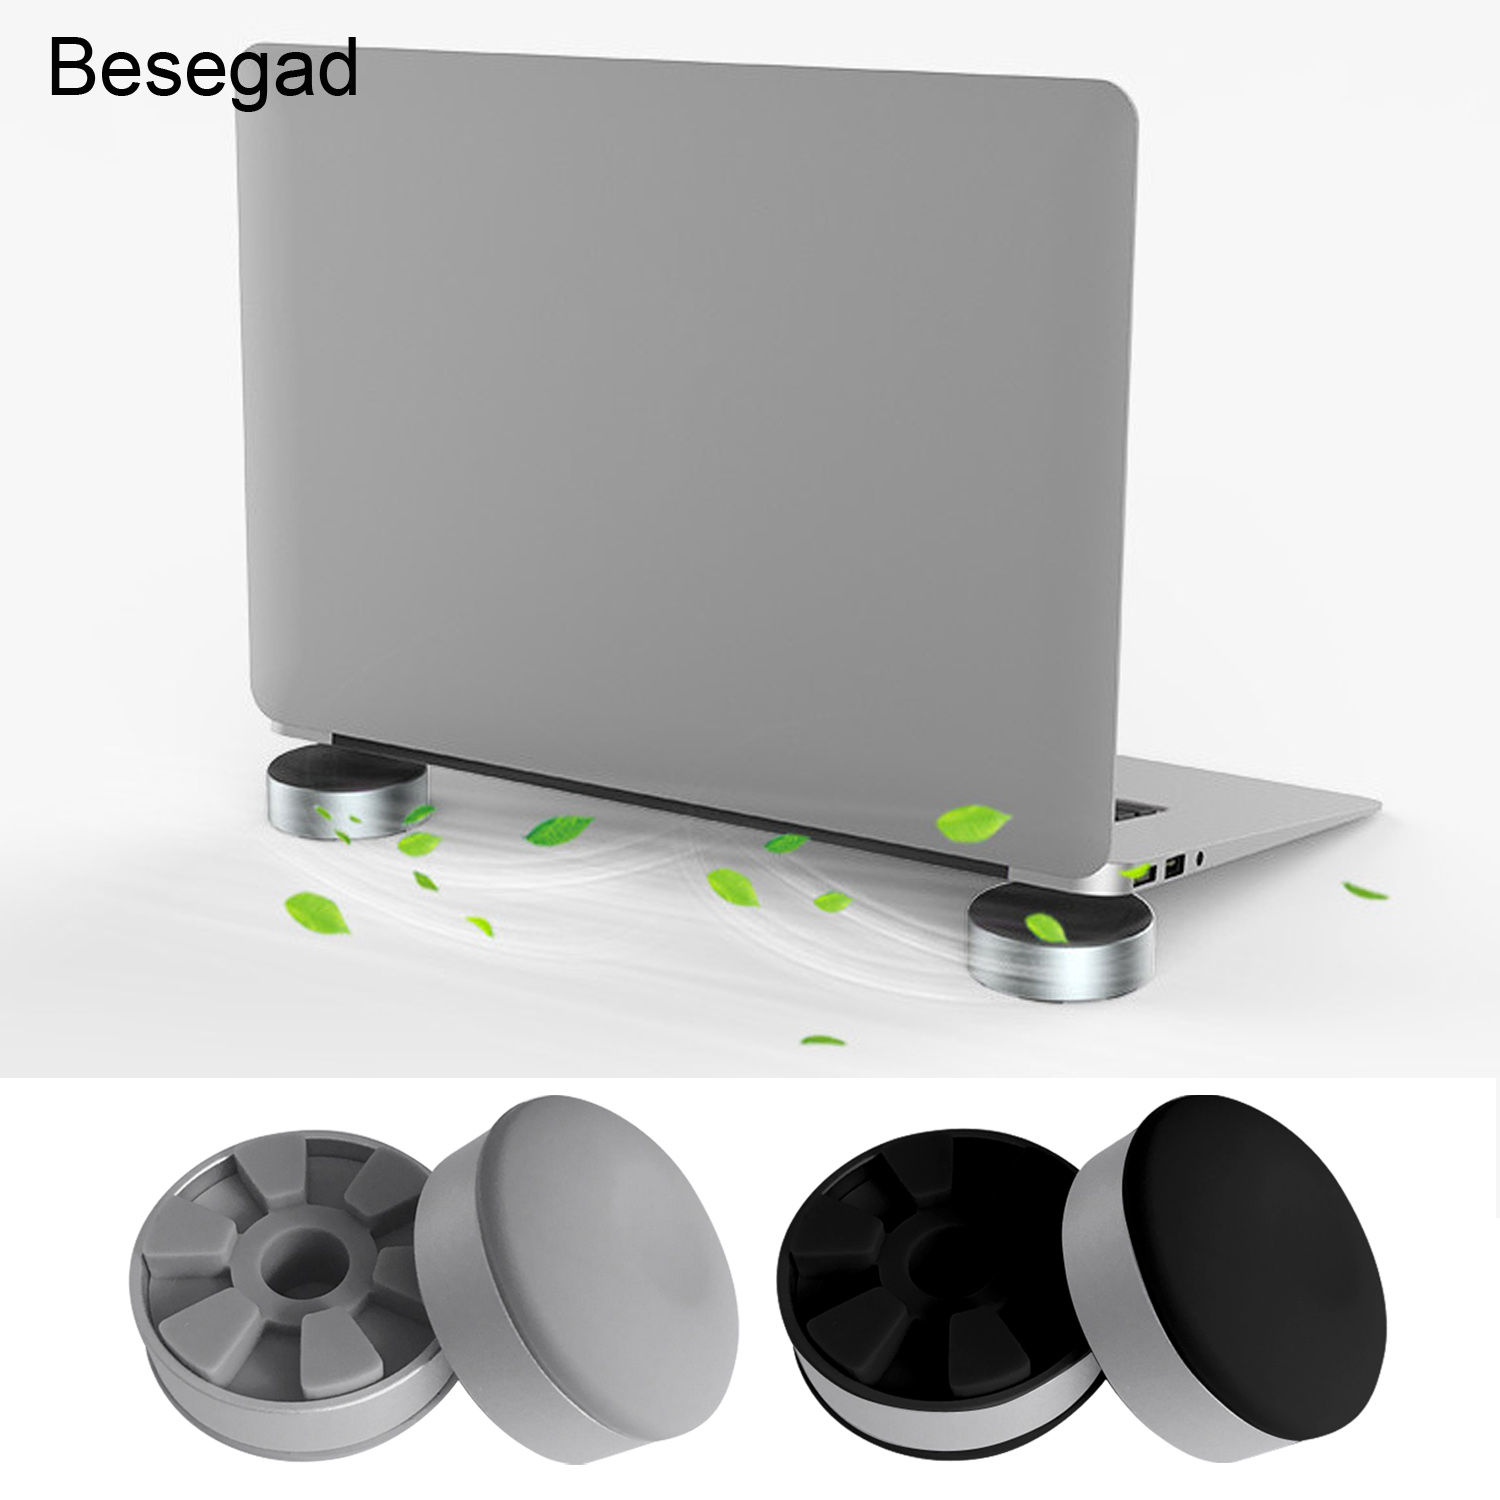 Besegad 2pcs Aluminum Alloy Cooling Pads Rubber Non-Slip Foot Pad for Apple MacBook Pro Mac Book Samsung Lenovo Laptop Notebook